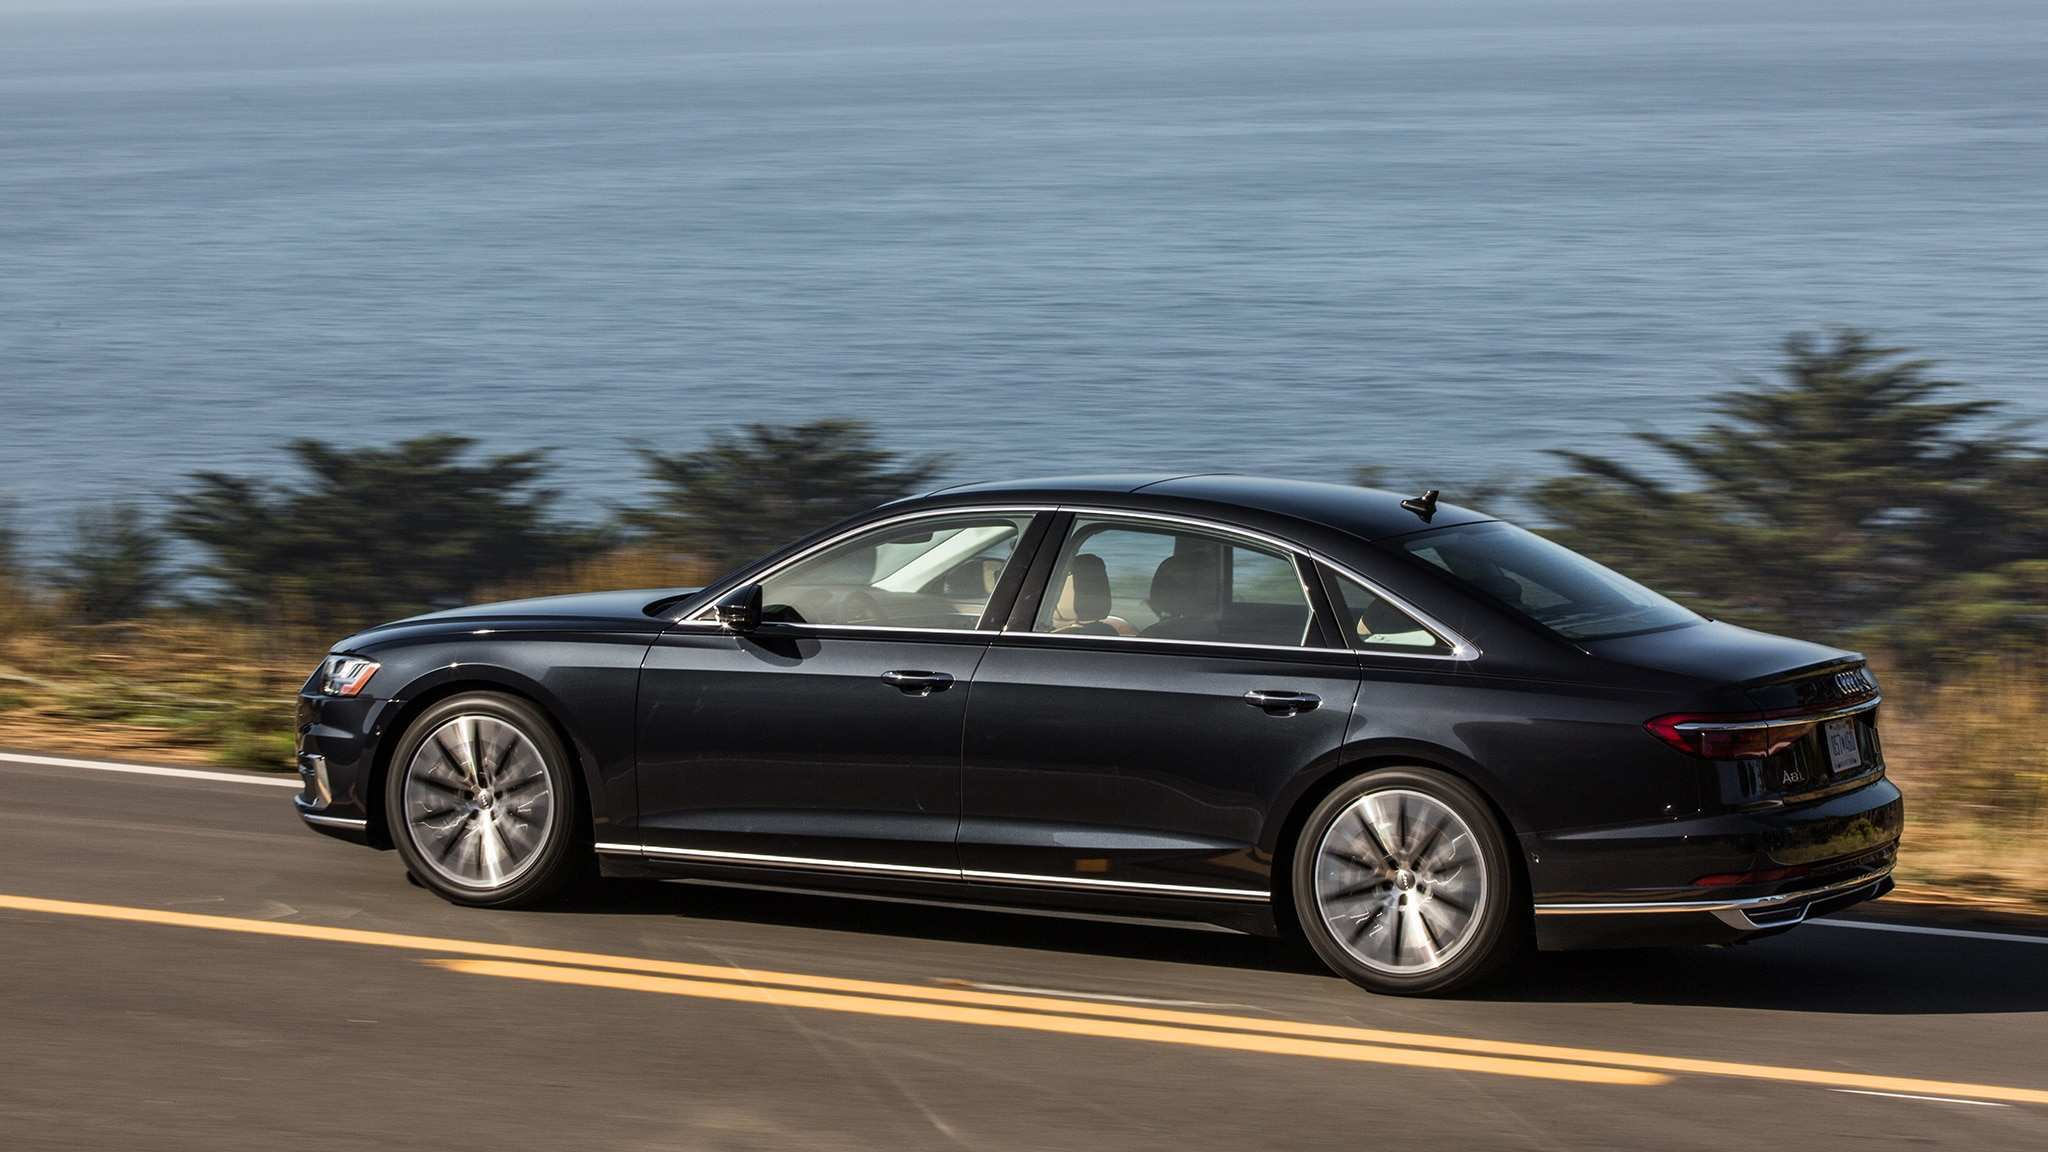 31 All New 2019 Audi A8 Debut Reviews by 2019 Audi A8 Debut